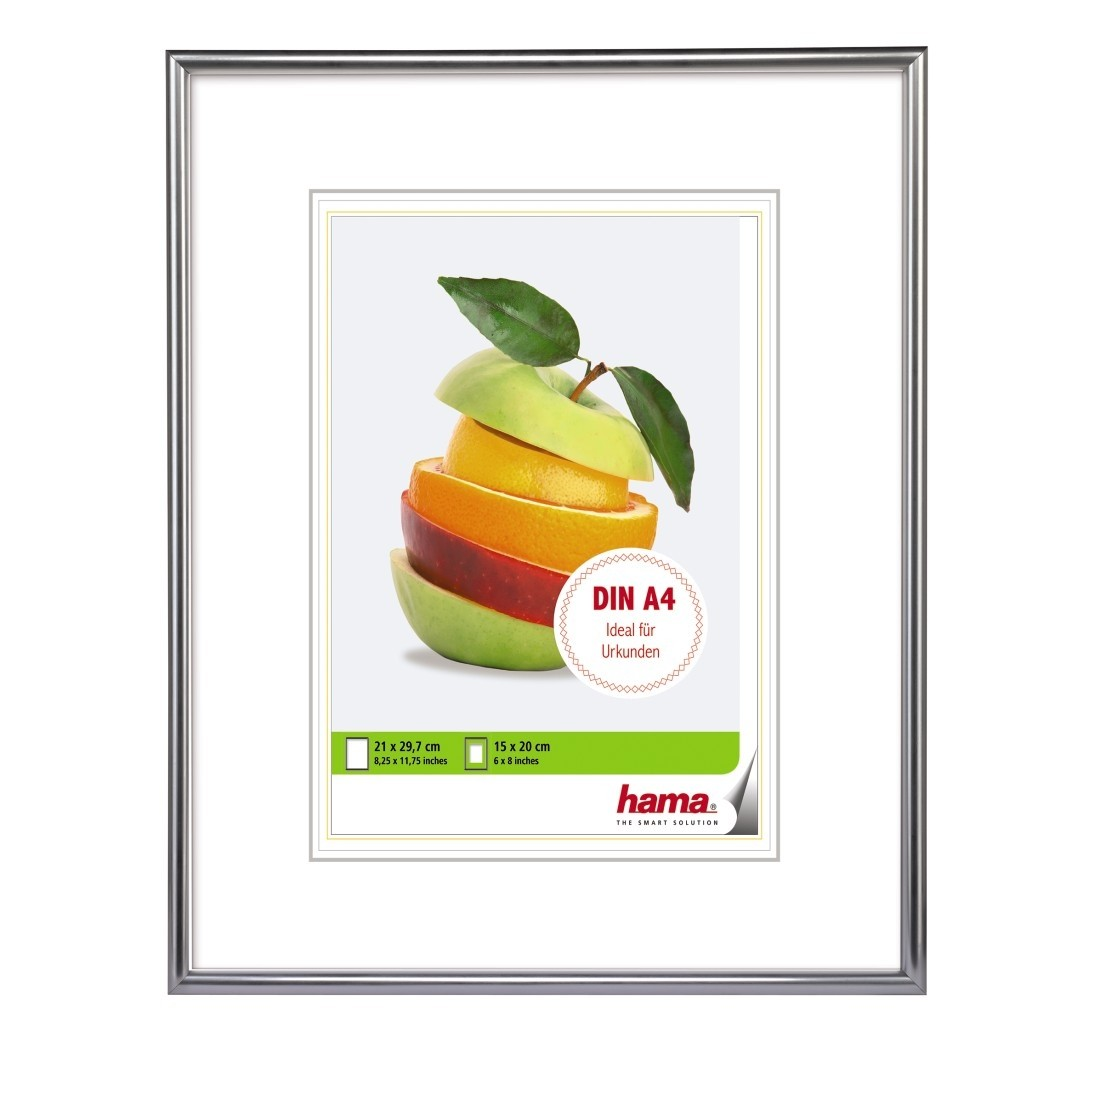 A4 Bilderrahmen Picture Frame Silver For Din A4 Formats Basf Coatings Promoshop